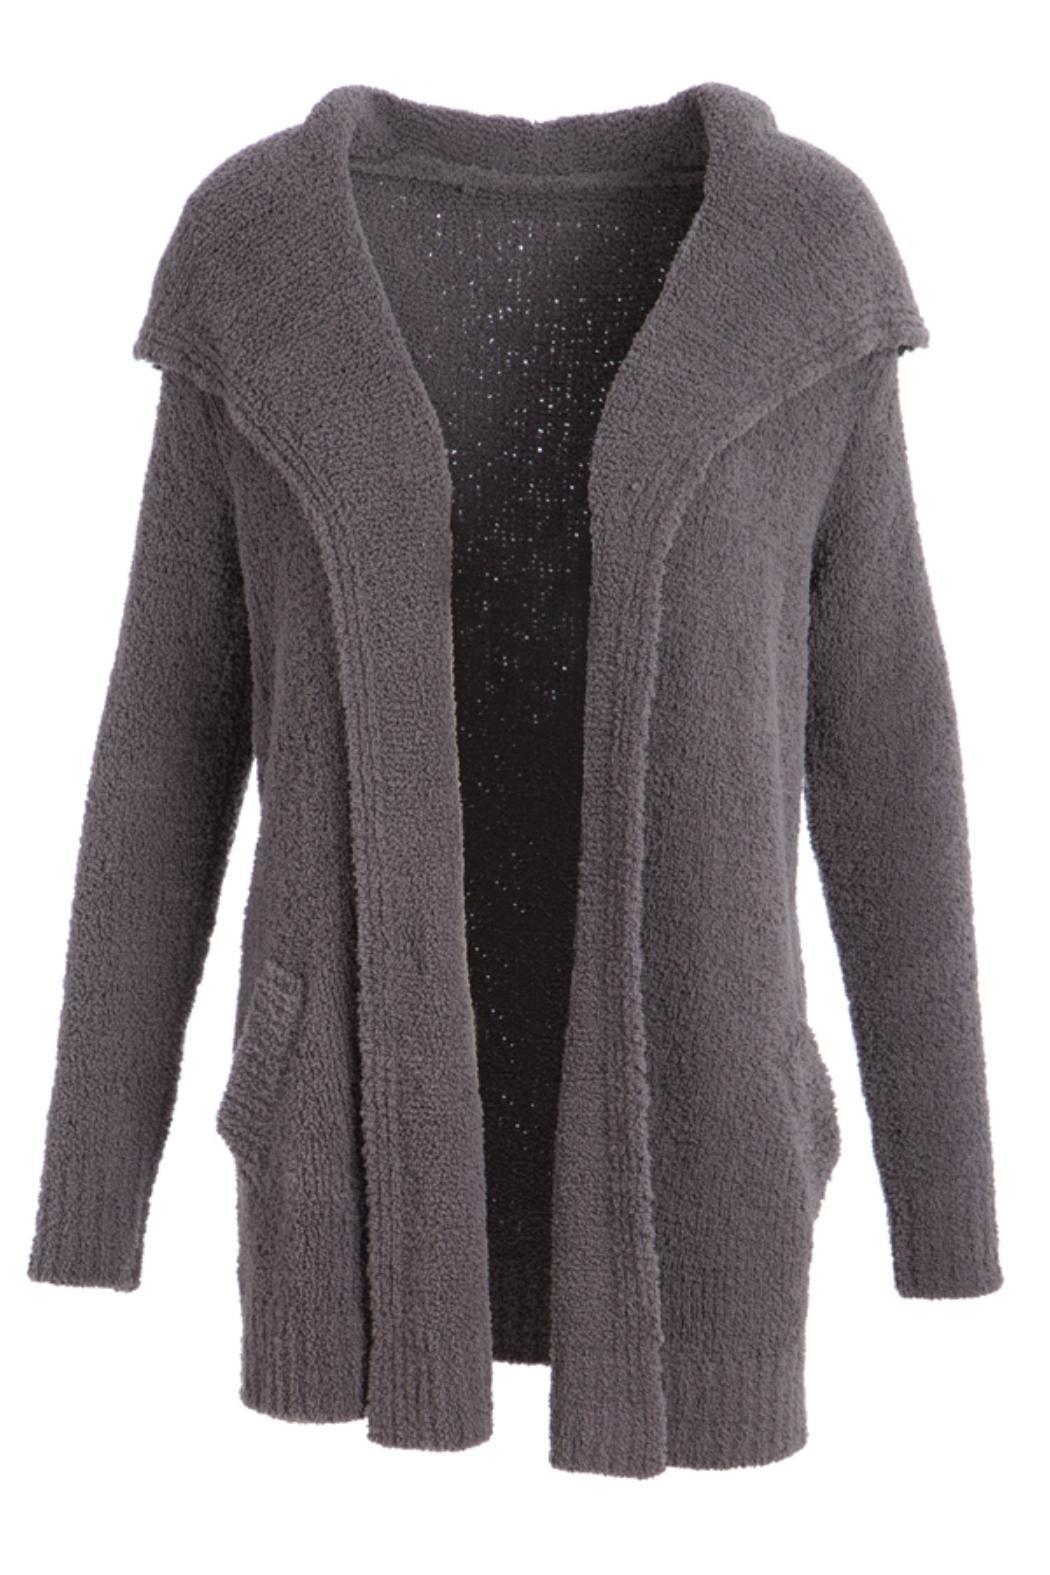 Evergreen Enterprises Chenille Open Cardigan - Front Cropped Image